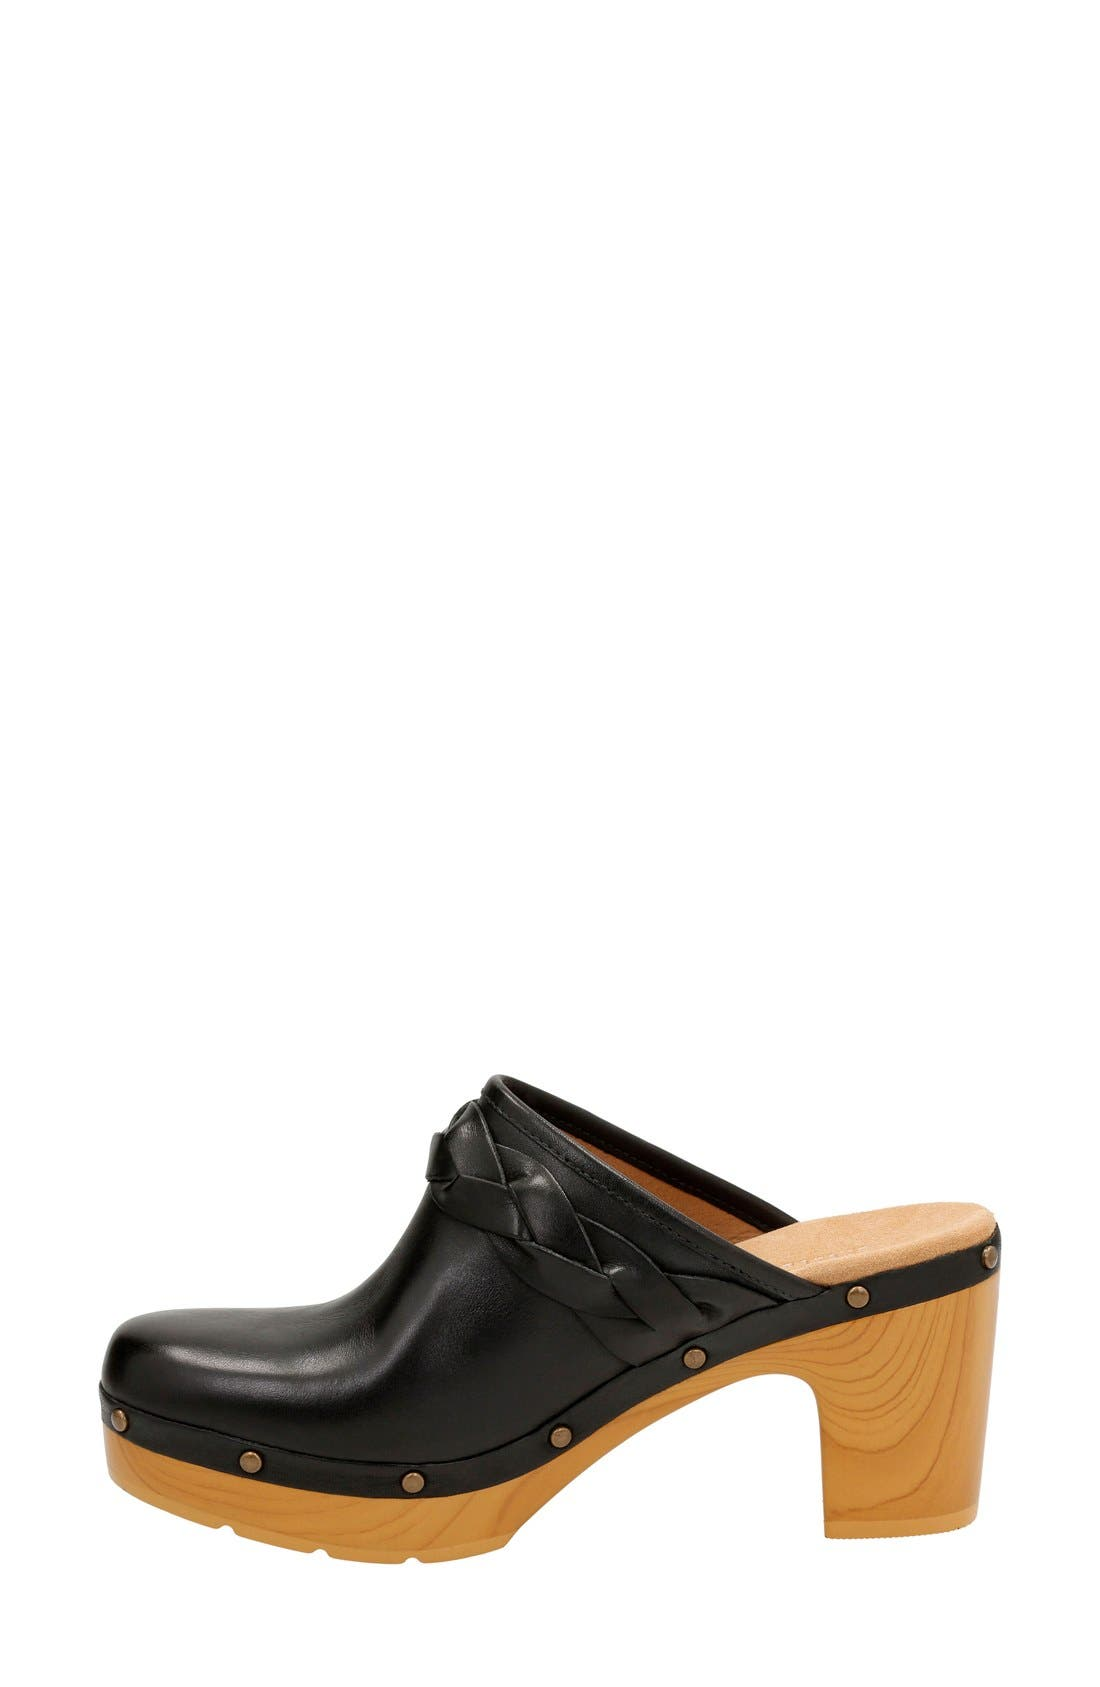 Ledella Meg Platform Clog,                             Alternate thumbnail 2, color,                             Black Leather